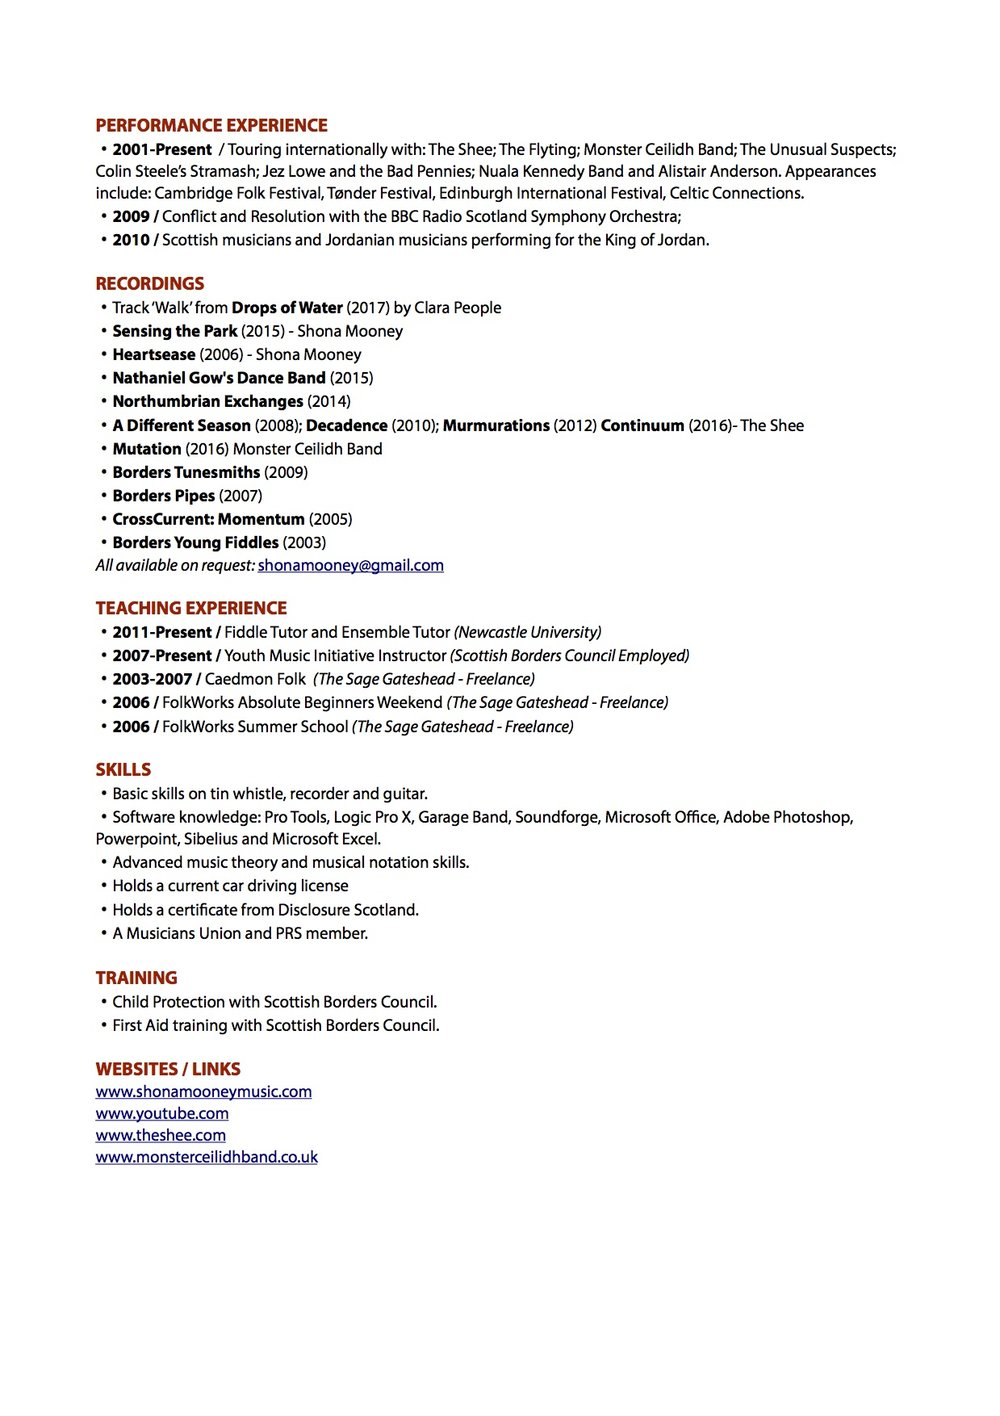 Shona Mooney CV (Strings)2.jpg